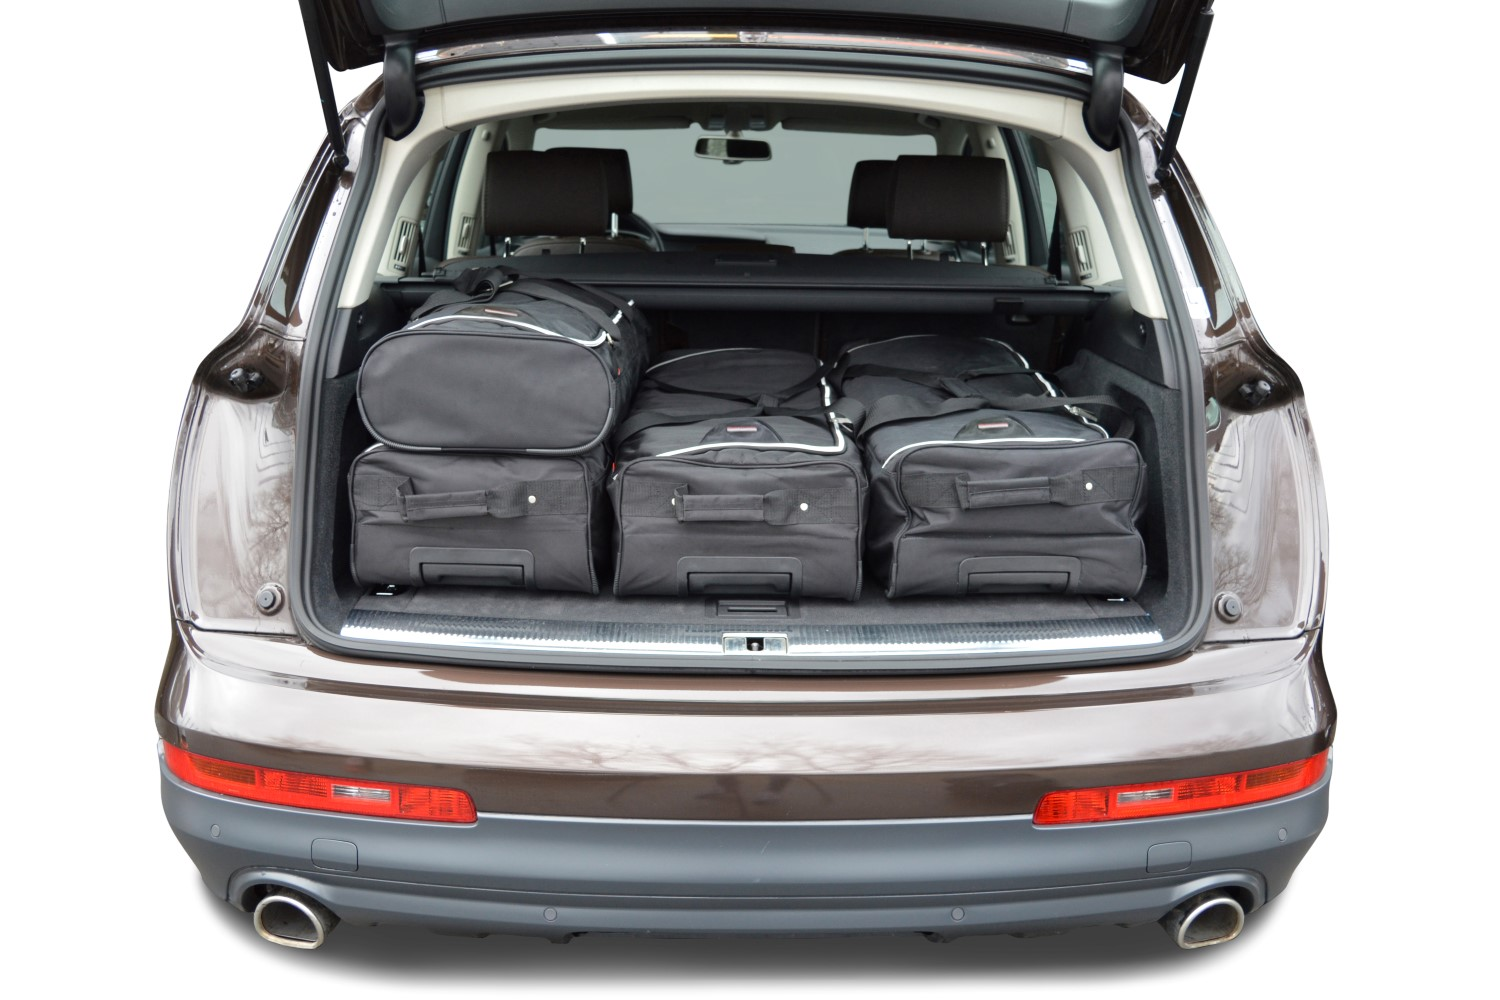 q7 audi q7 4l 2006 2015 car bags set de sacs de voyage. Black Bedroom Furniture Sets. Home Design Ideas